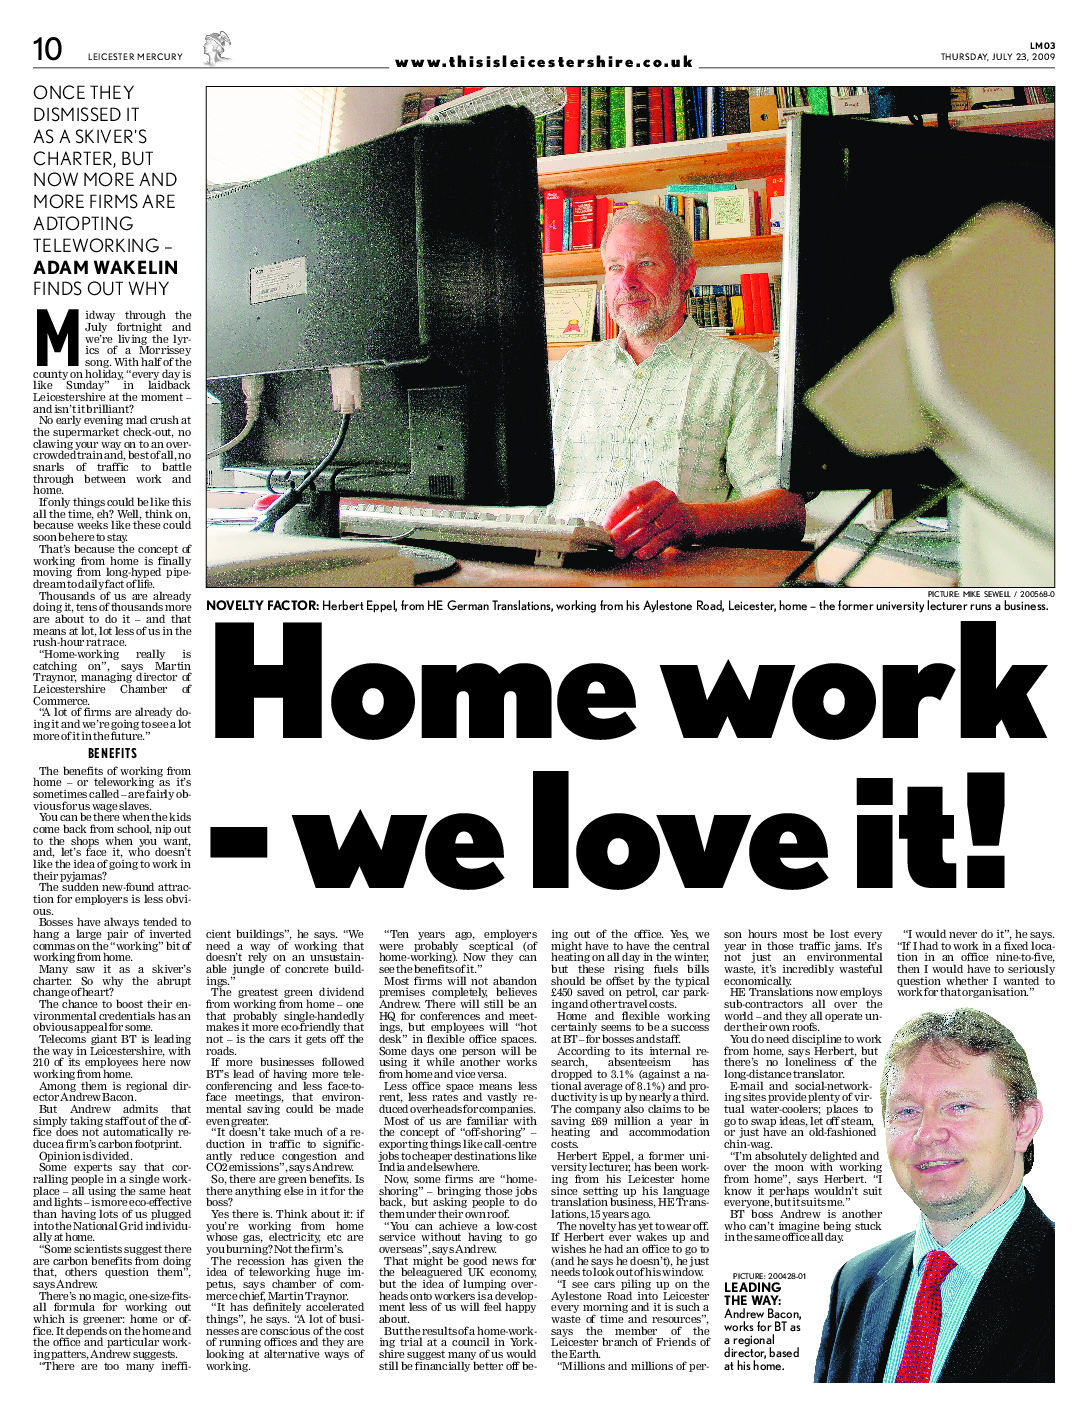 Leicster Mercury teleworking article